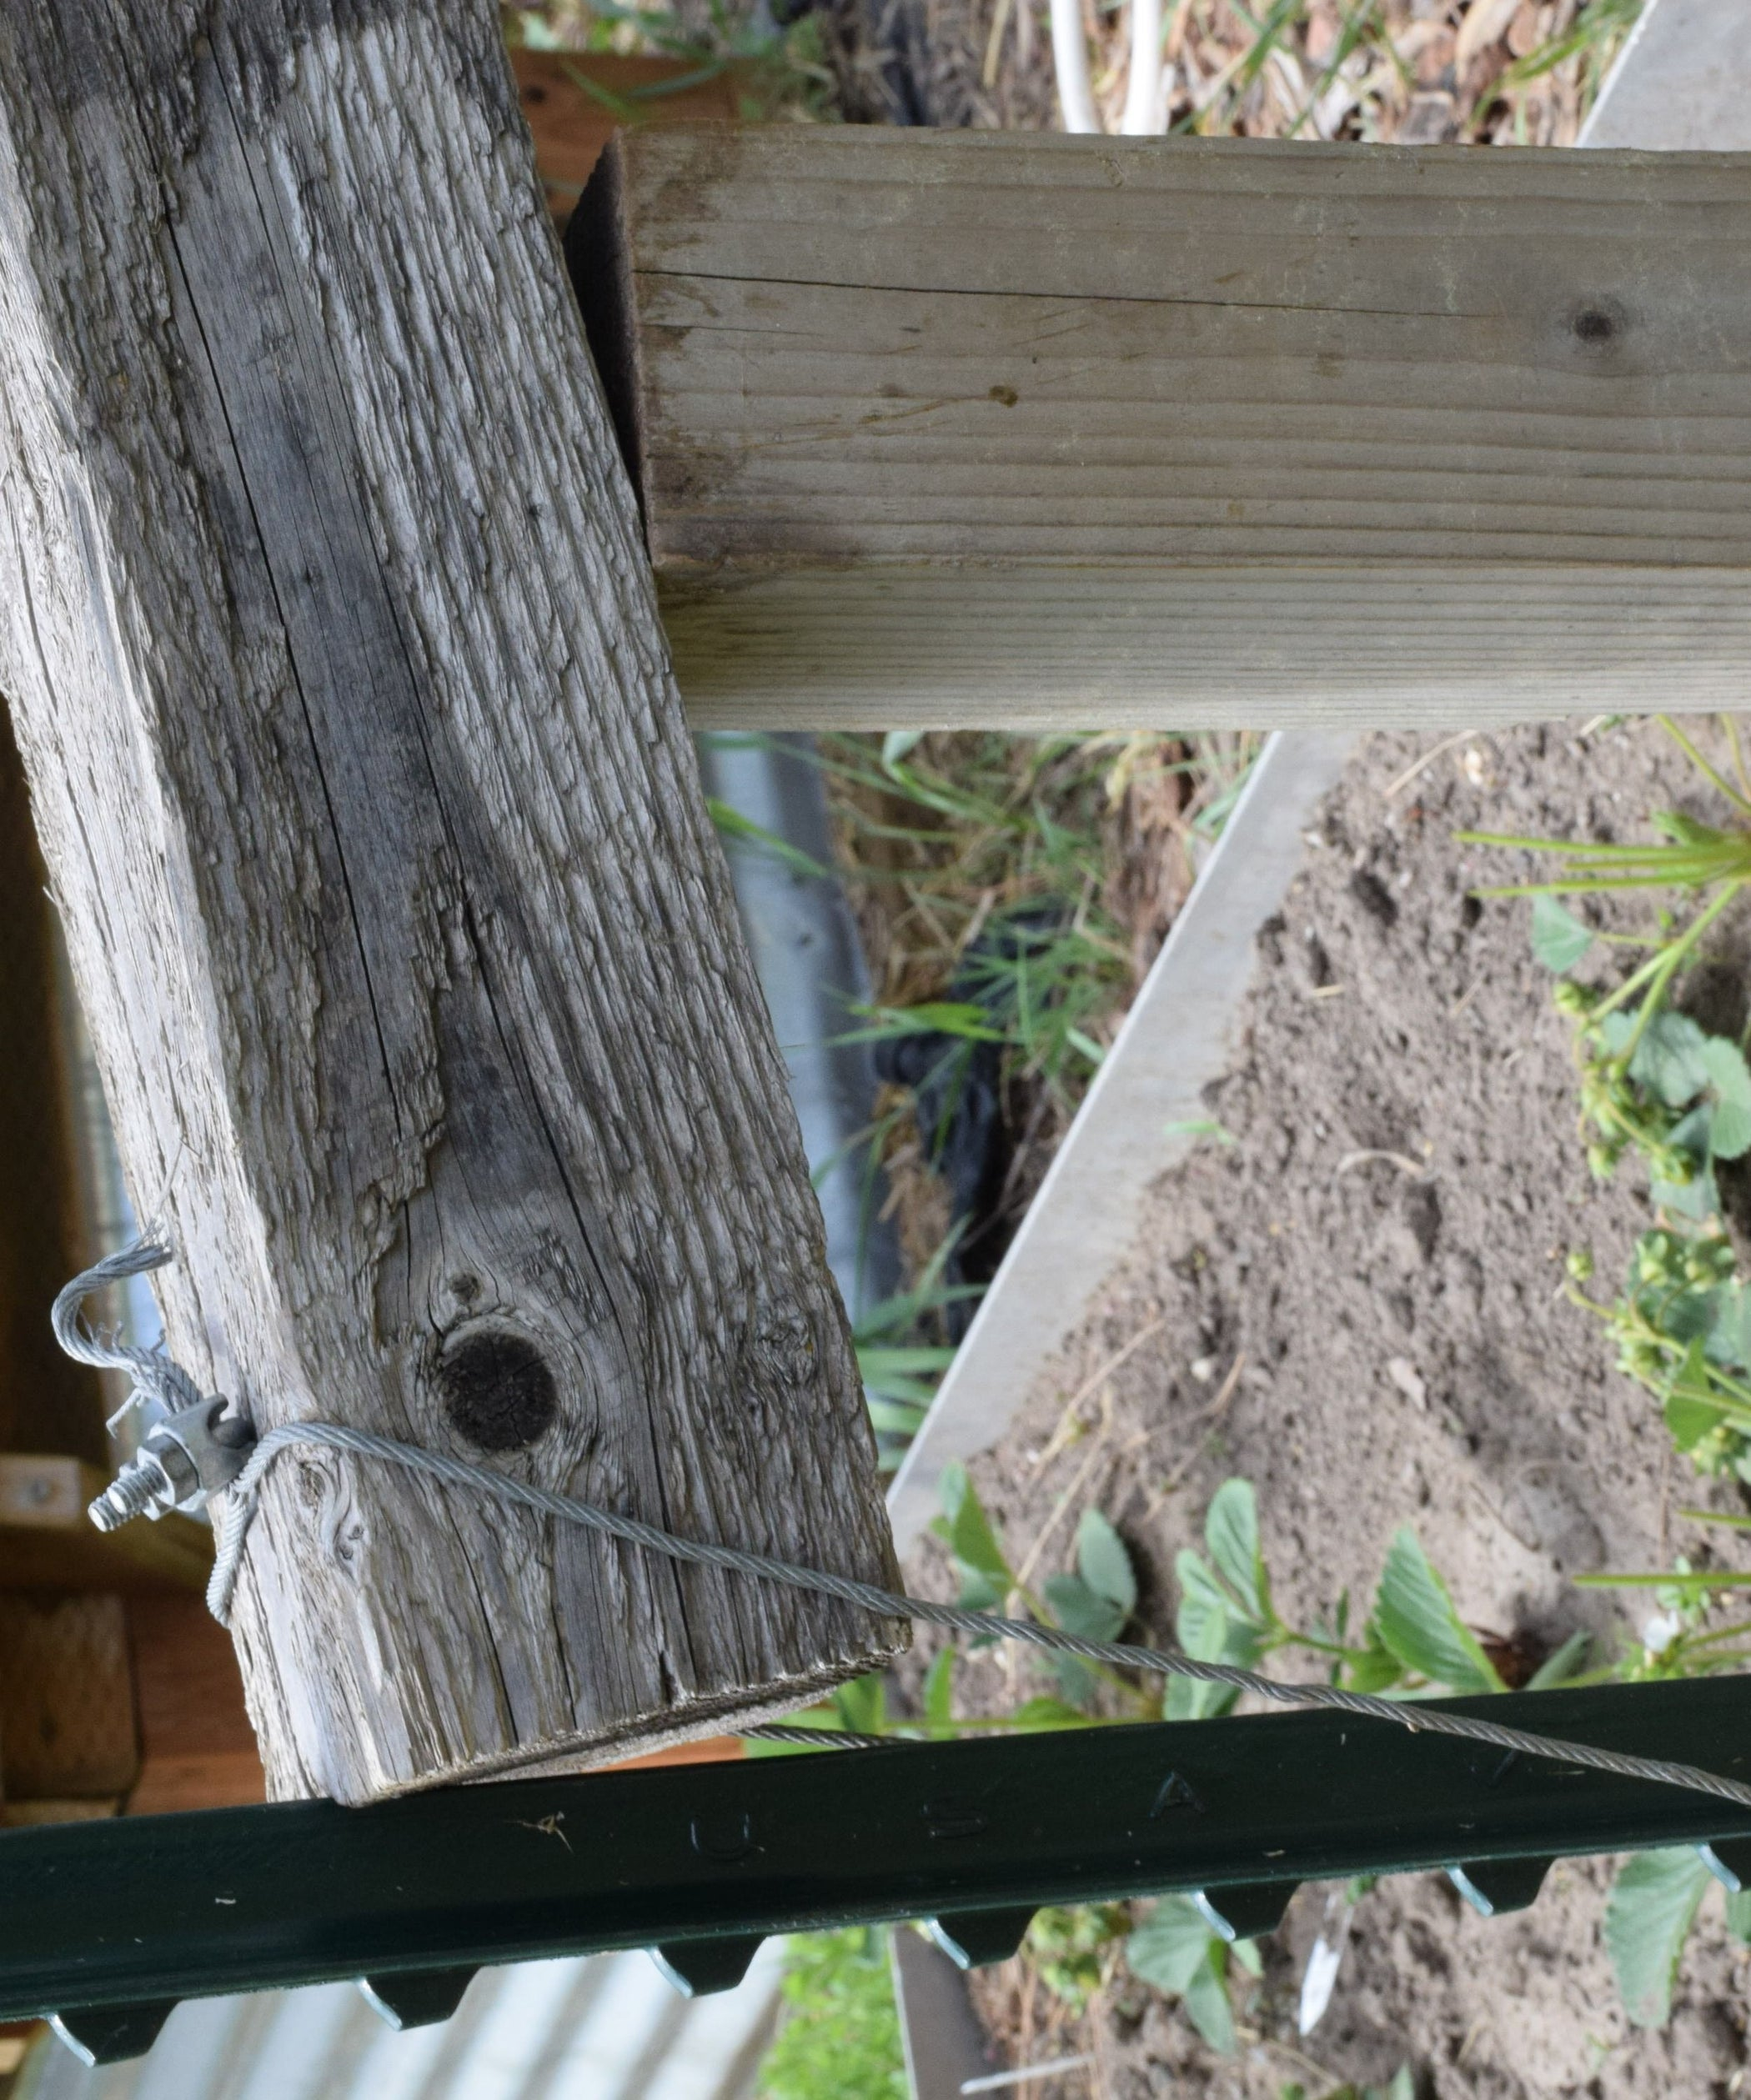 Cheap and Easy Fence Post Puller: 6 Steps (with Pictures)